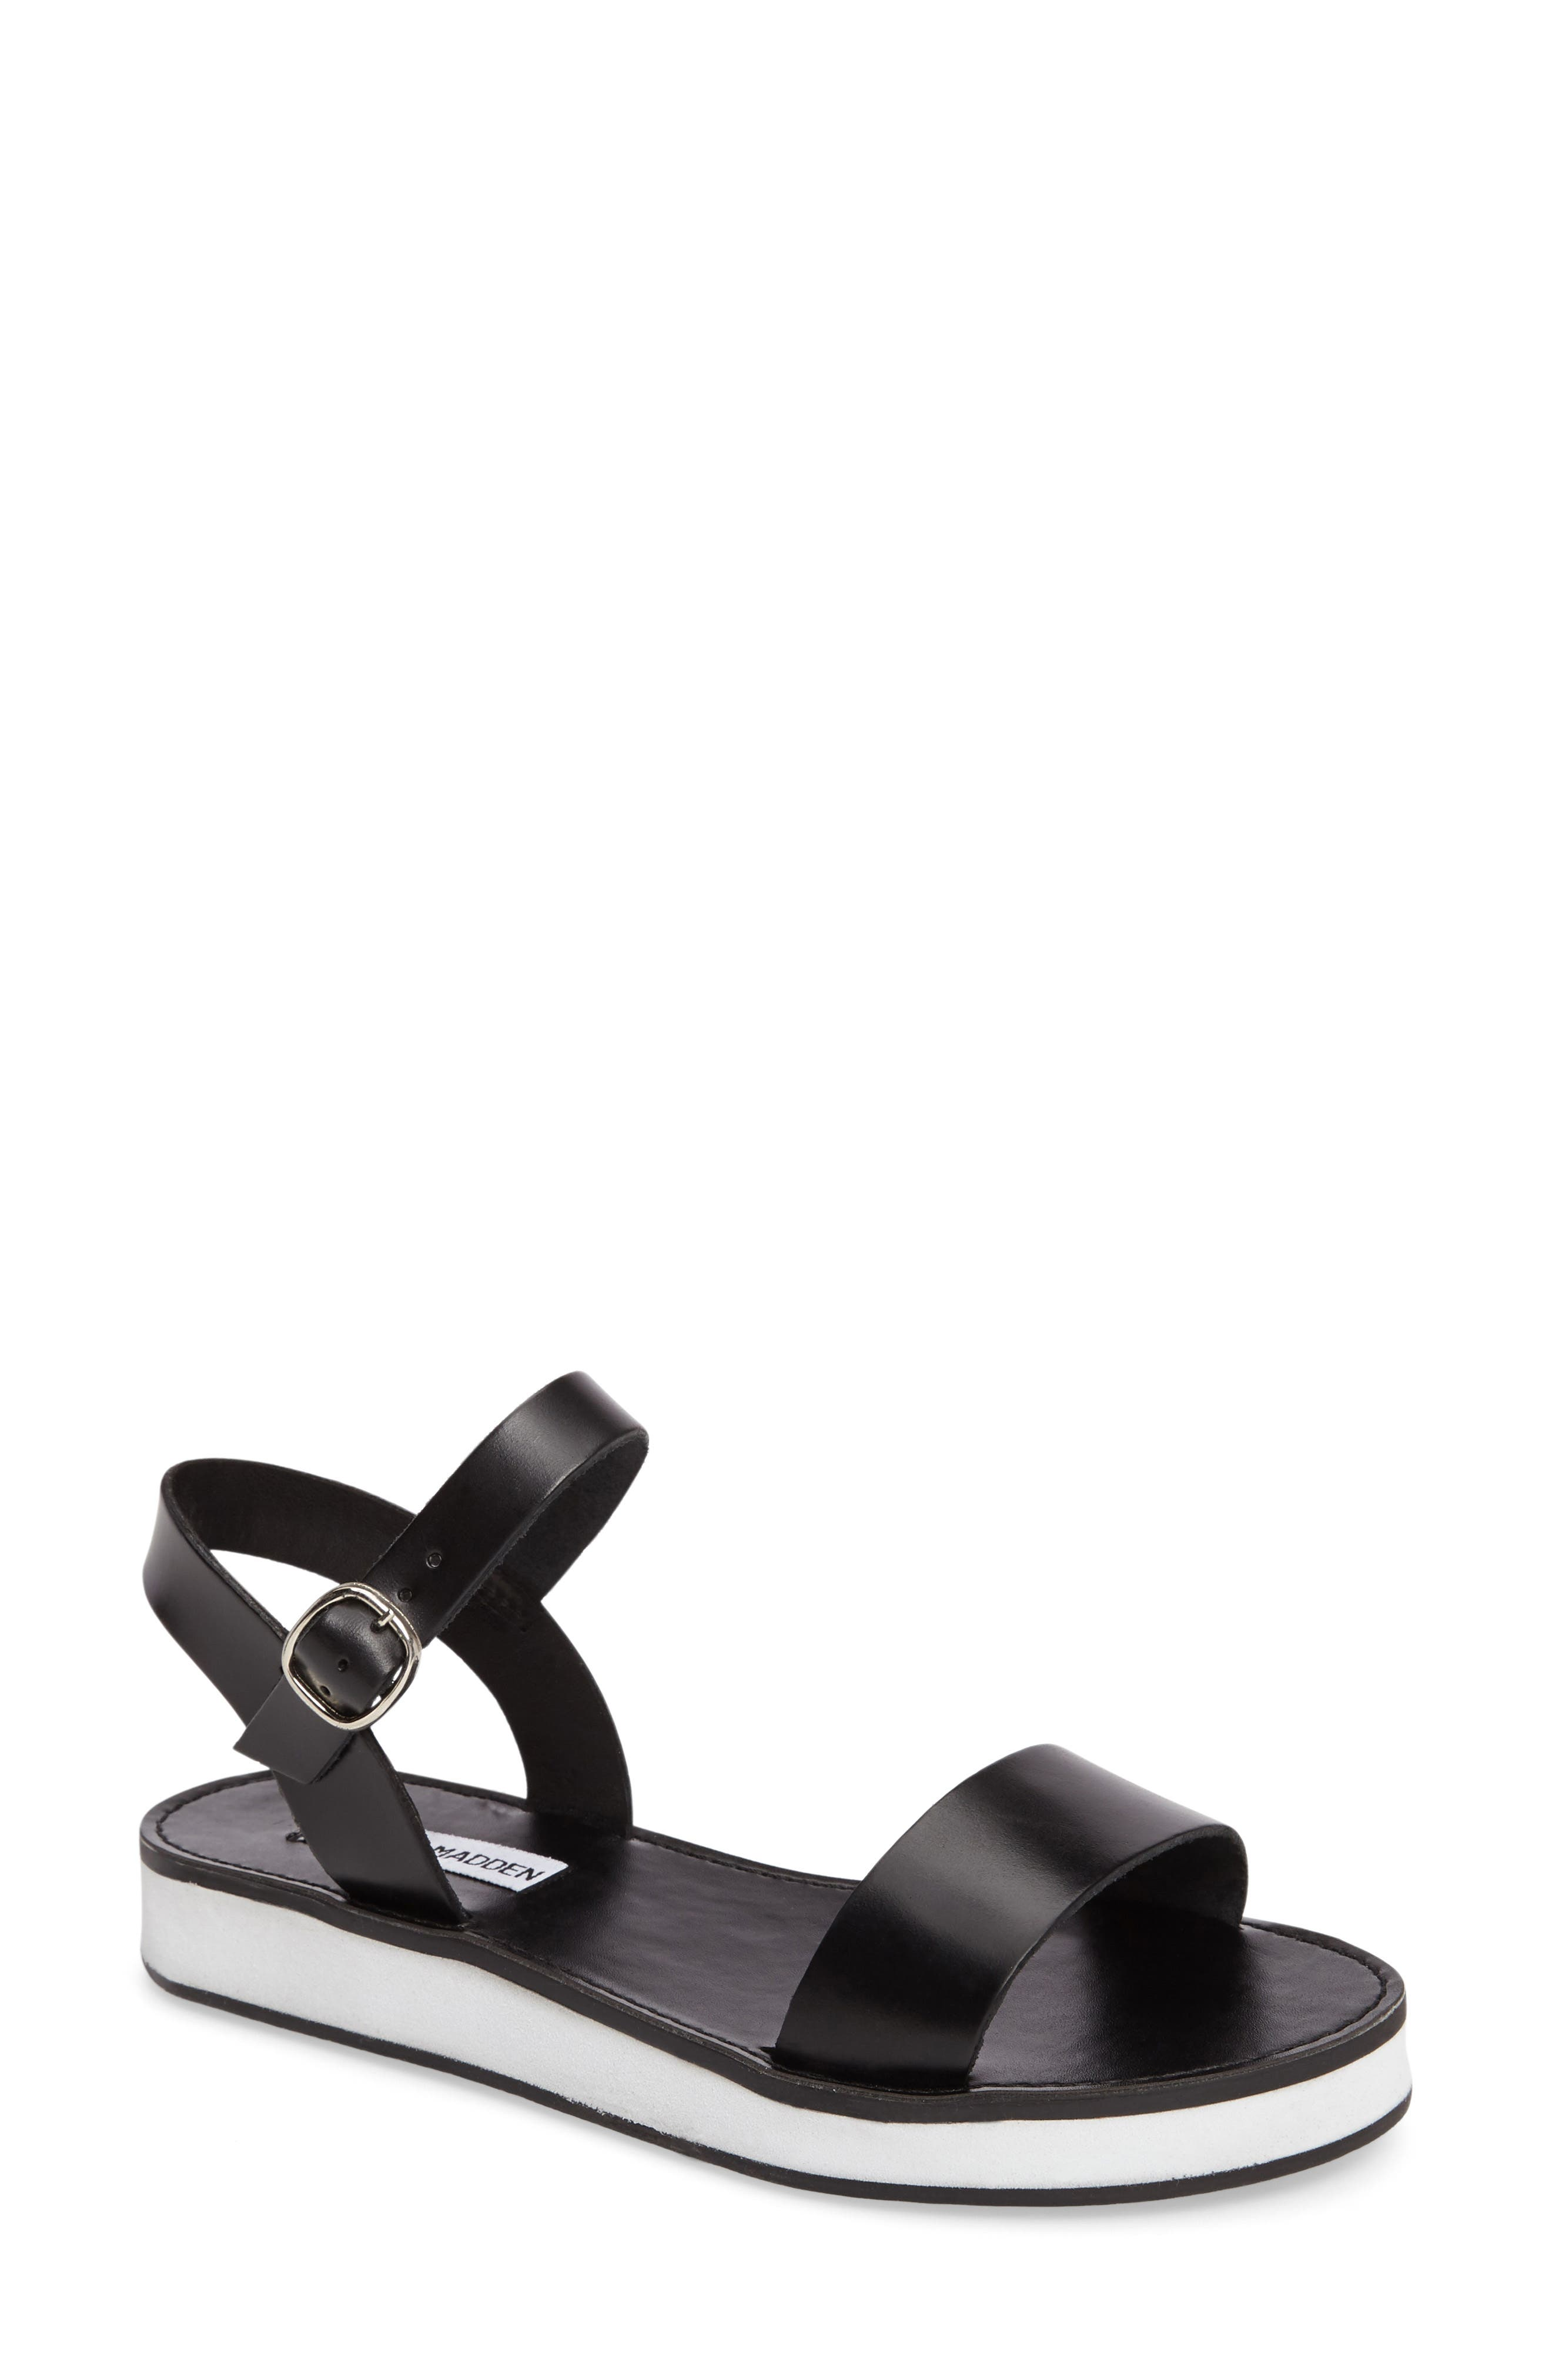 Deluxe Sandal,                         Main,                         color, 001